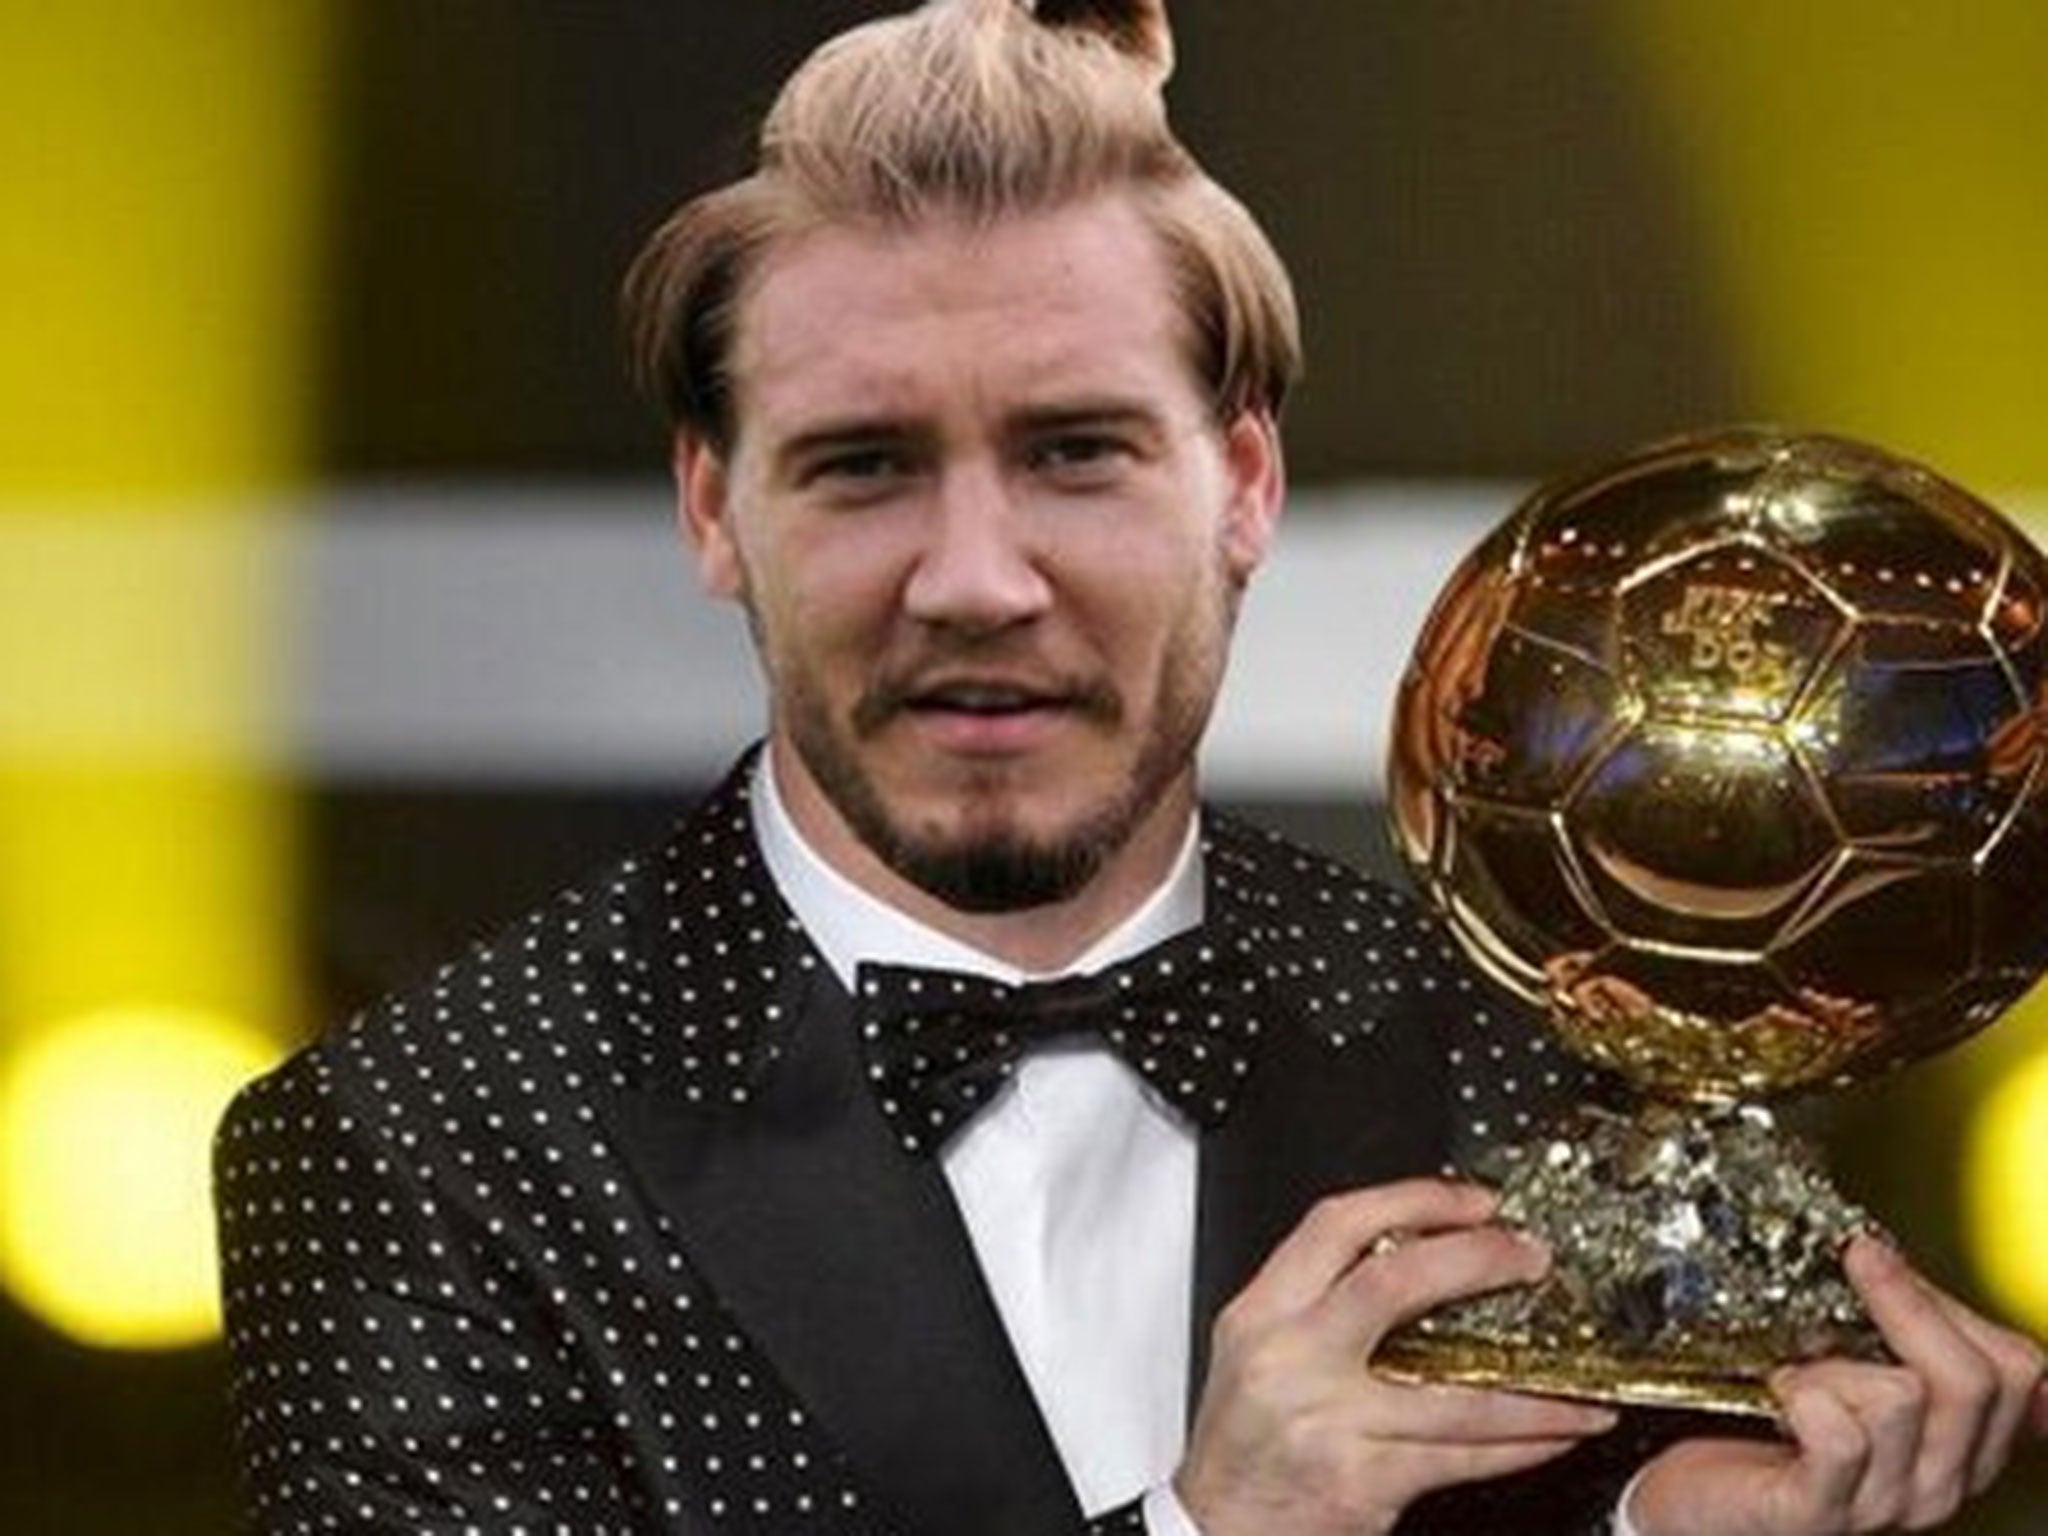 ... Bendtner scores hat-trick for Denmark: the best memes and reaction